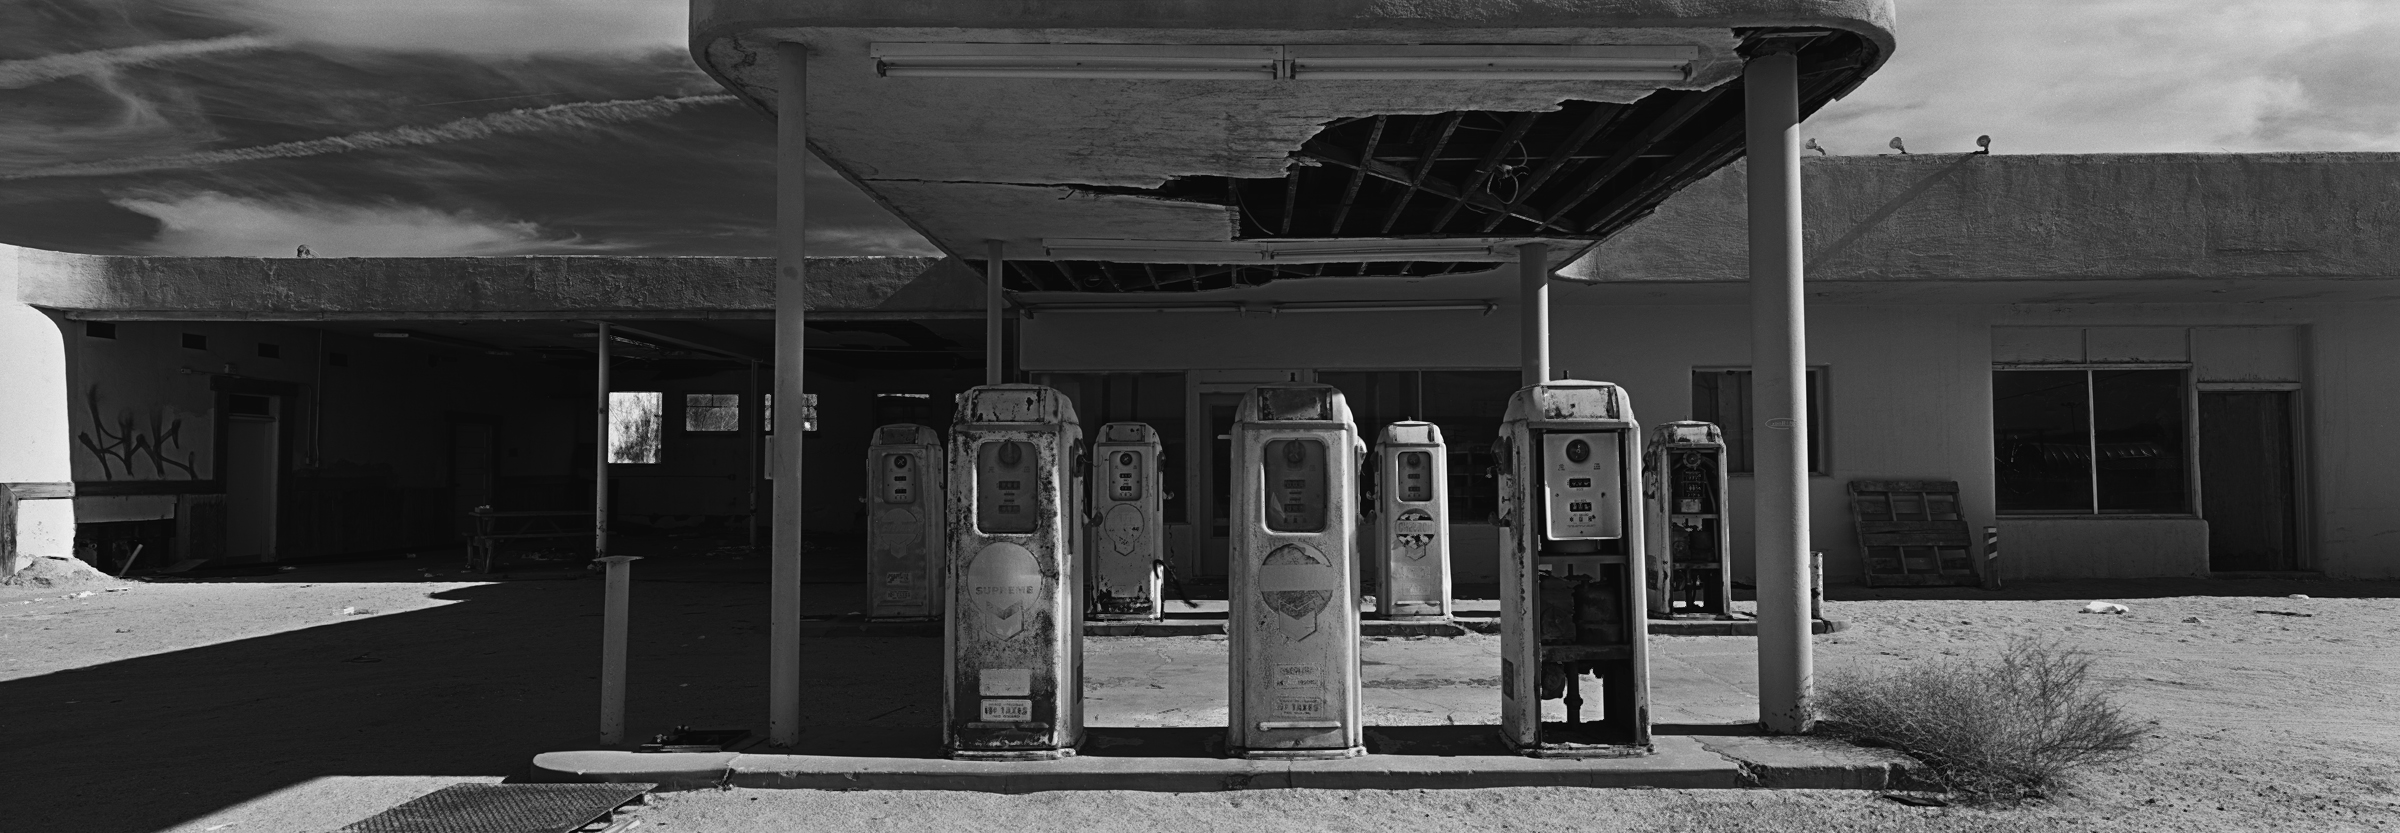 Desert Center Gas Pumps #2